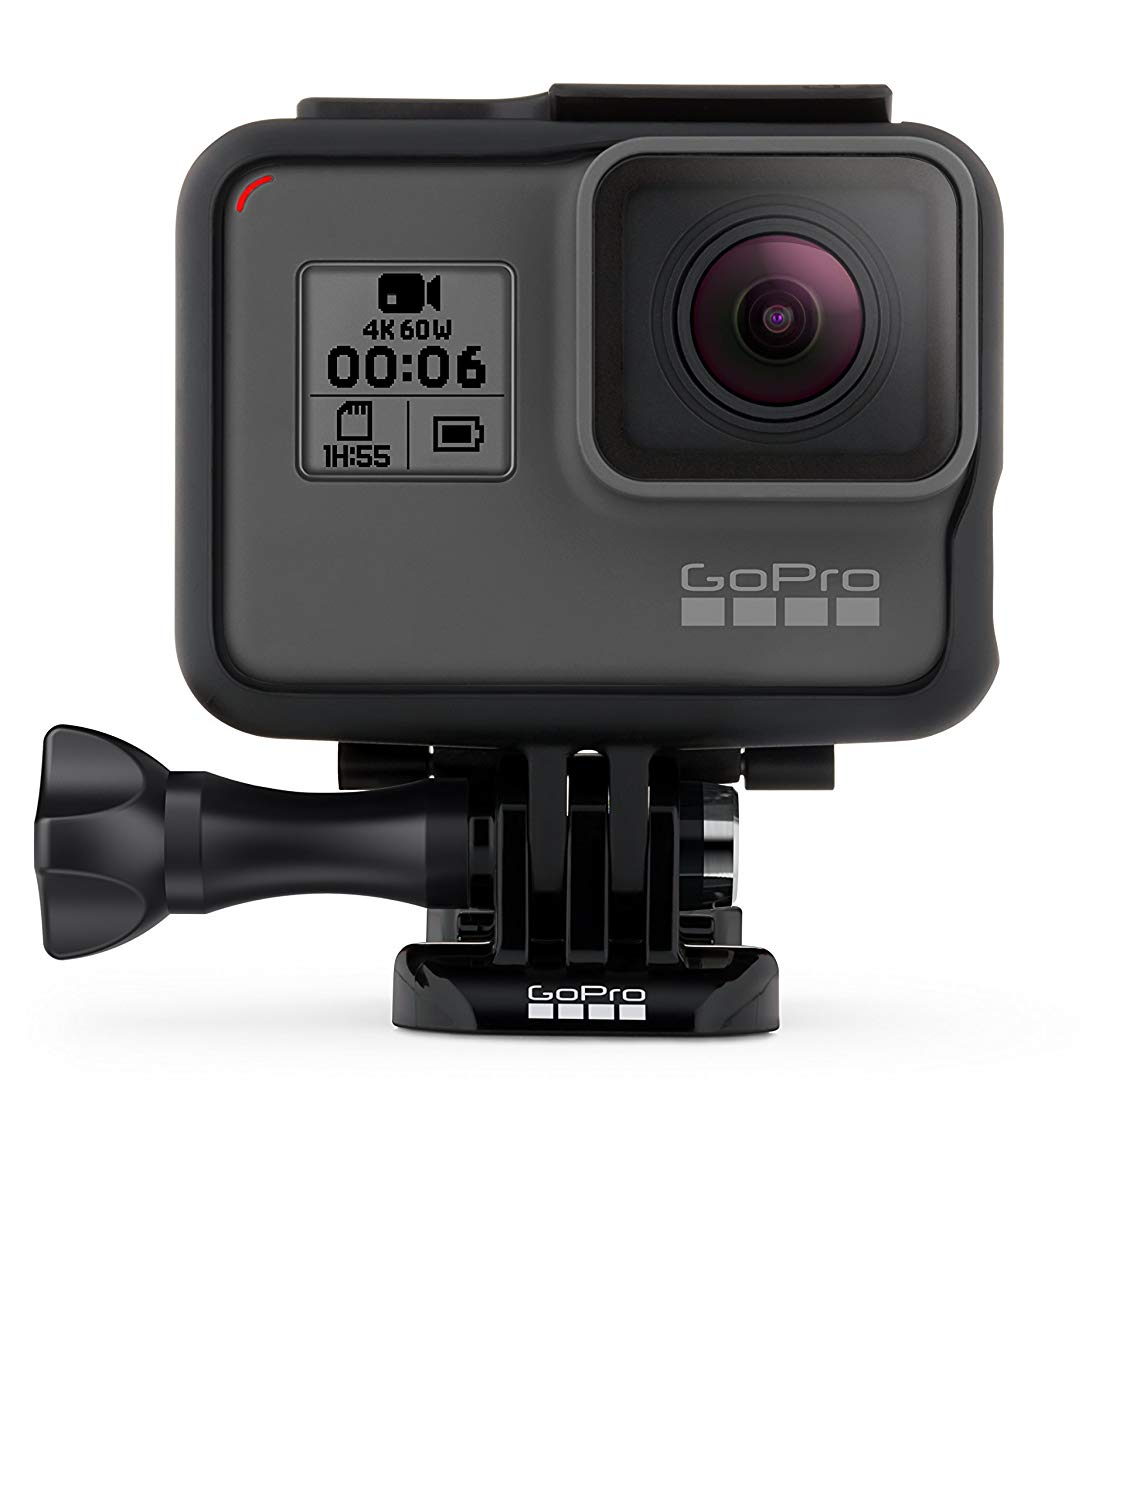 22% Off GoPro HERO6 Black 4K Action Camera (Certified Refurbished)